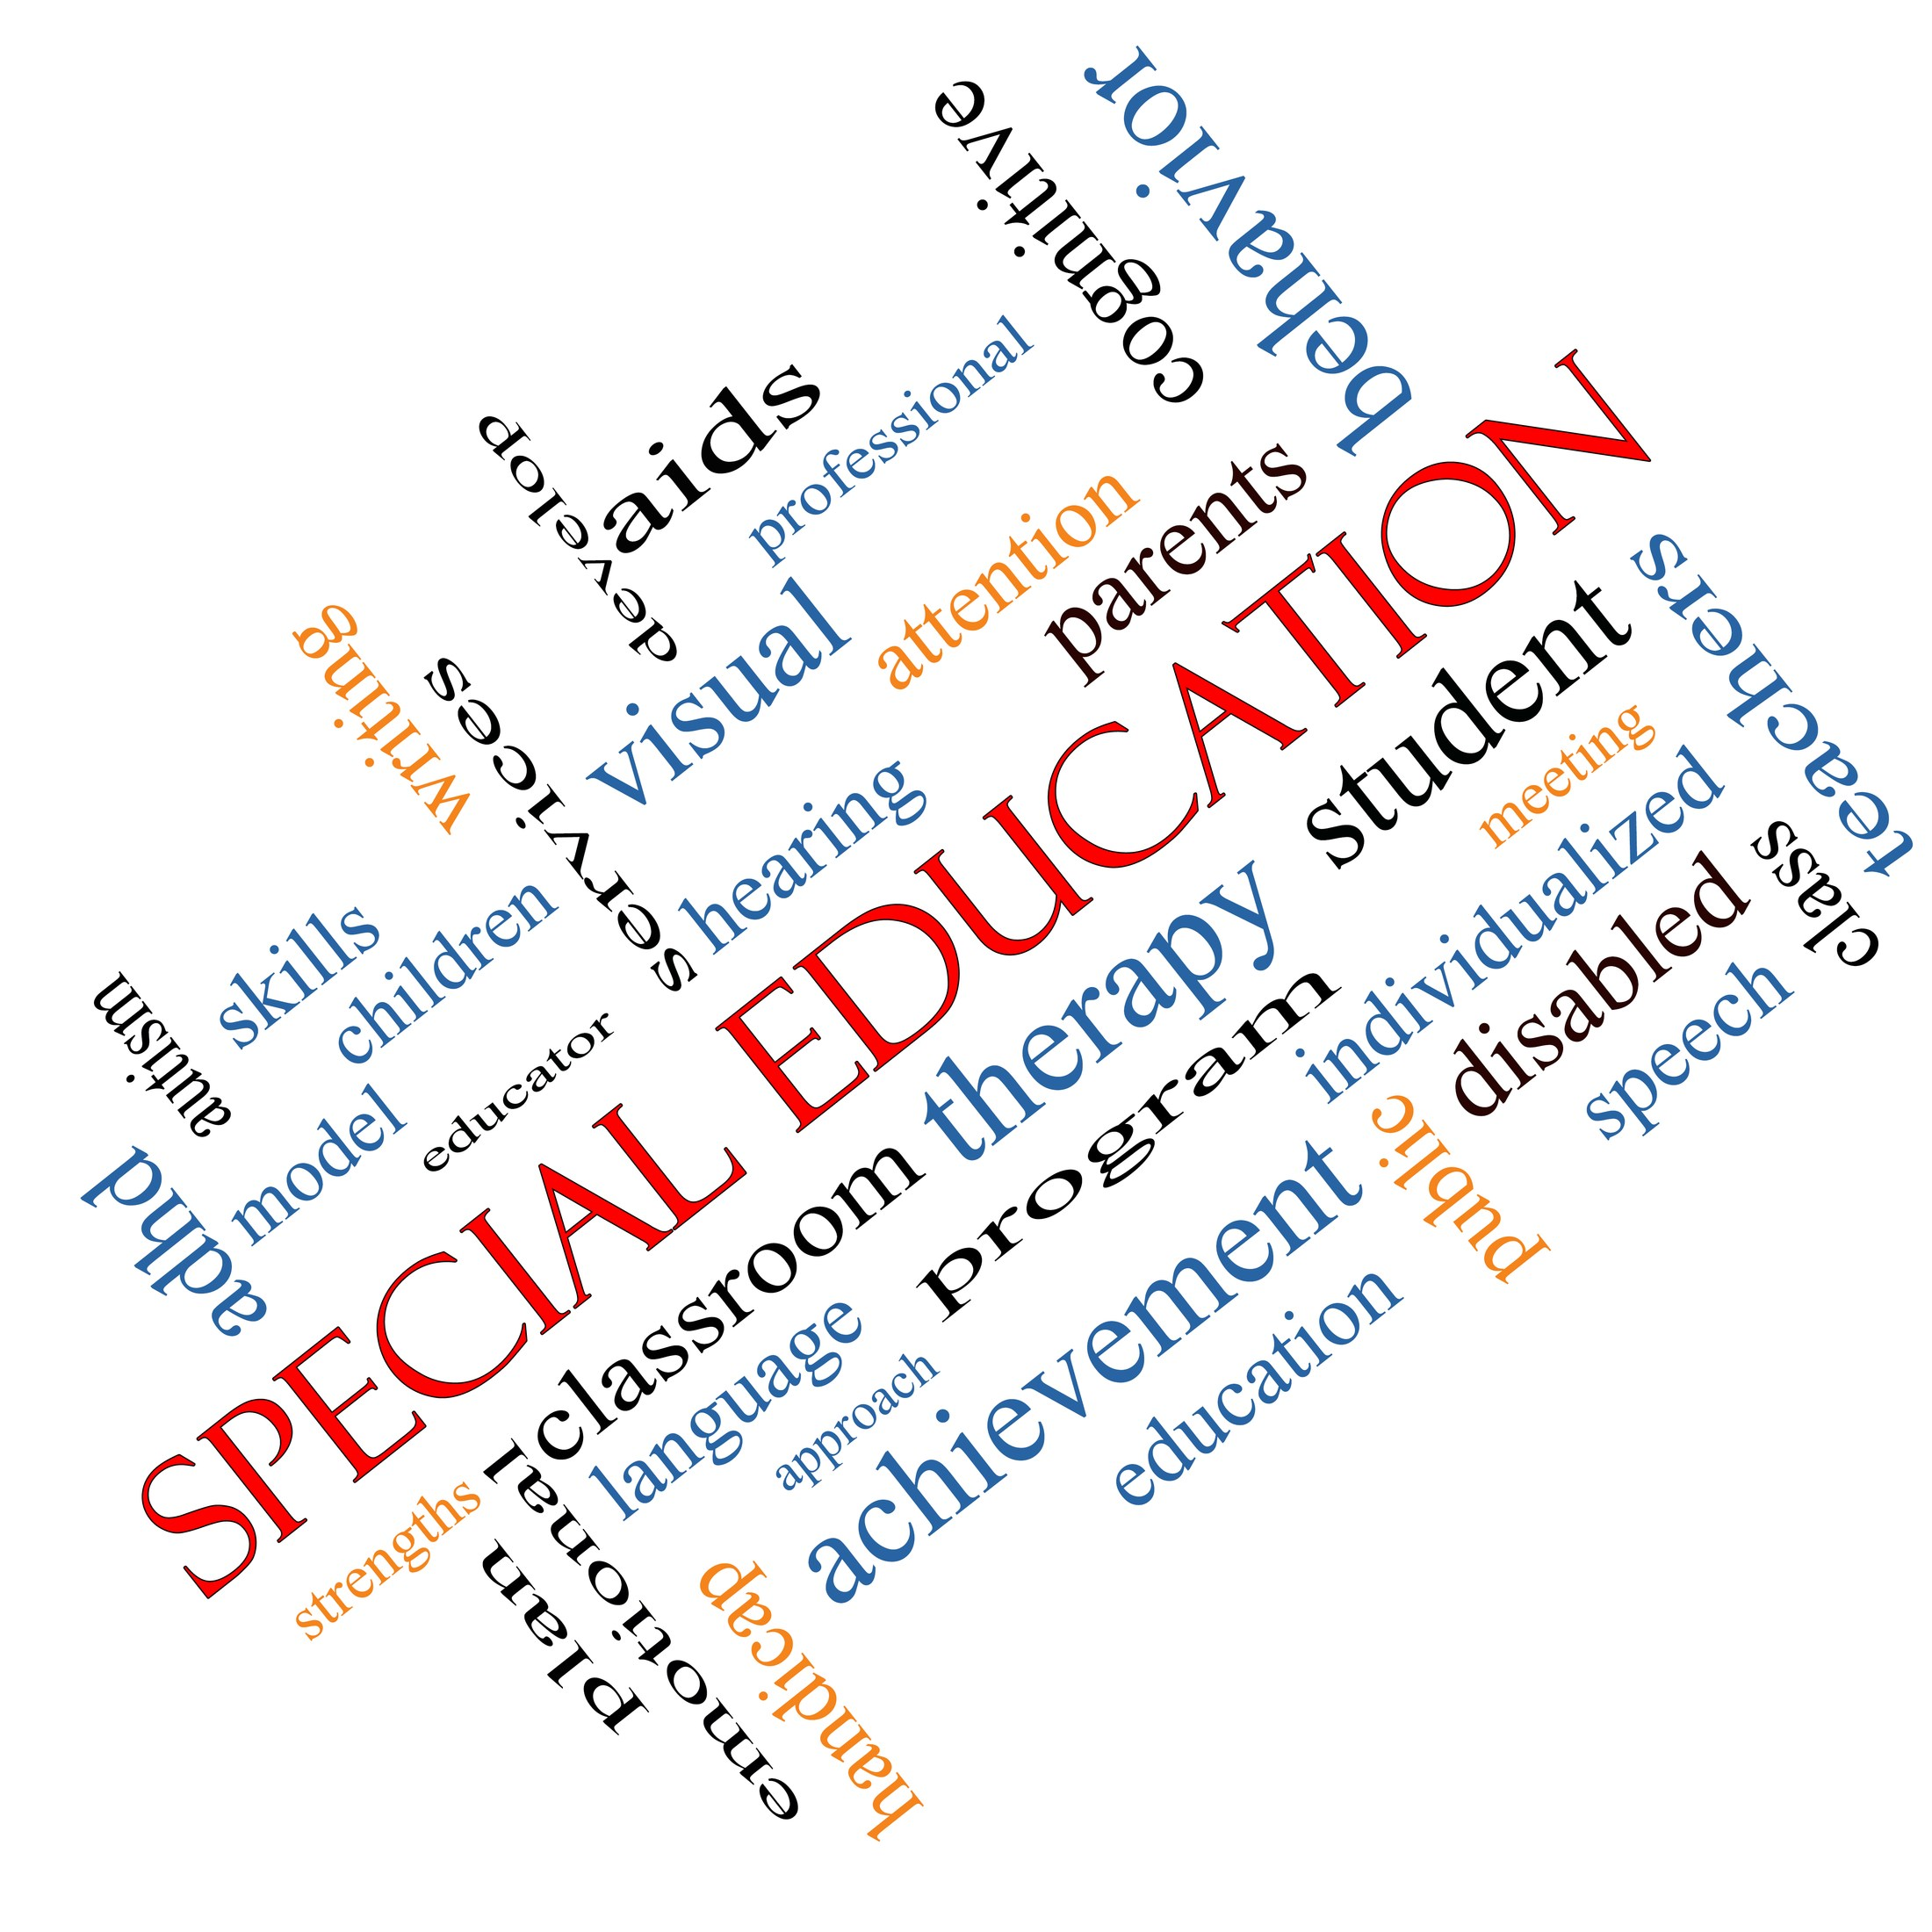 Special education wordle clipart image royalty free library Special Education Dept | Morse image royalty free library